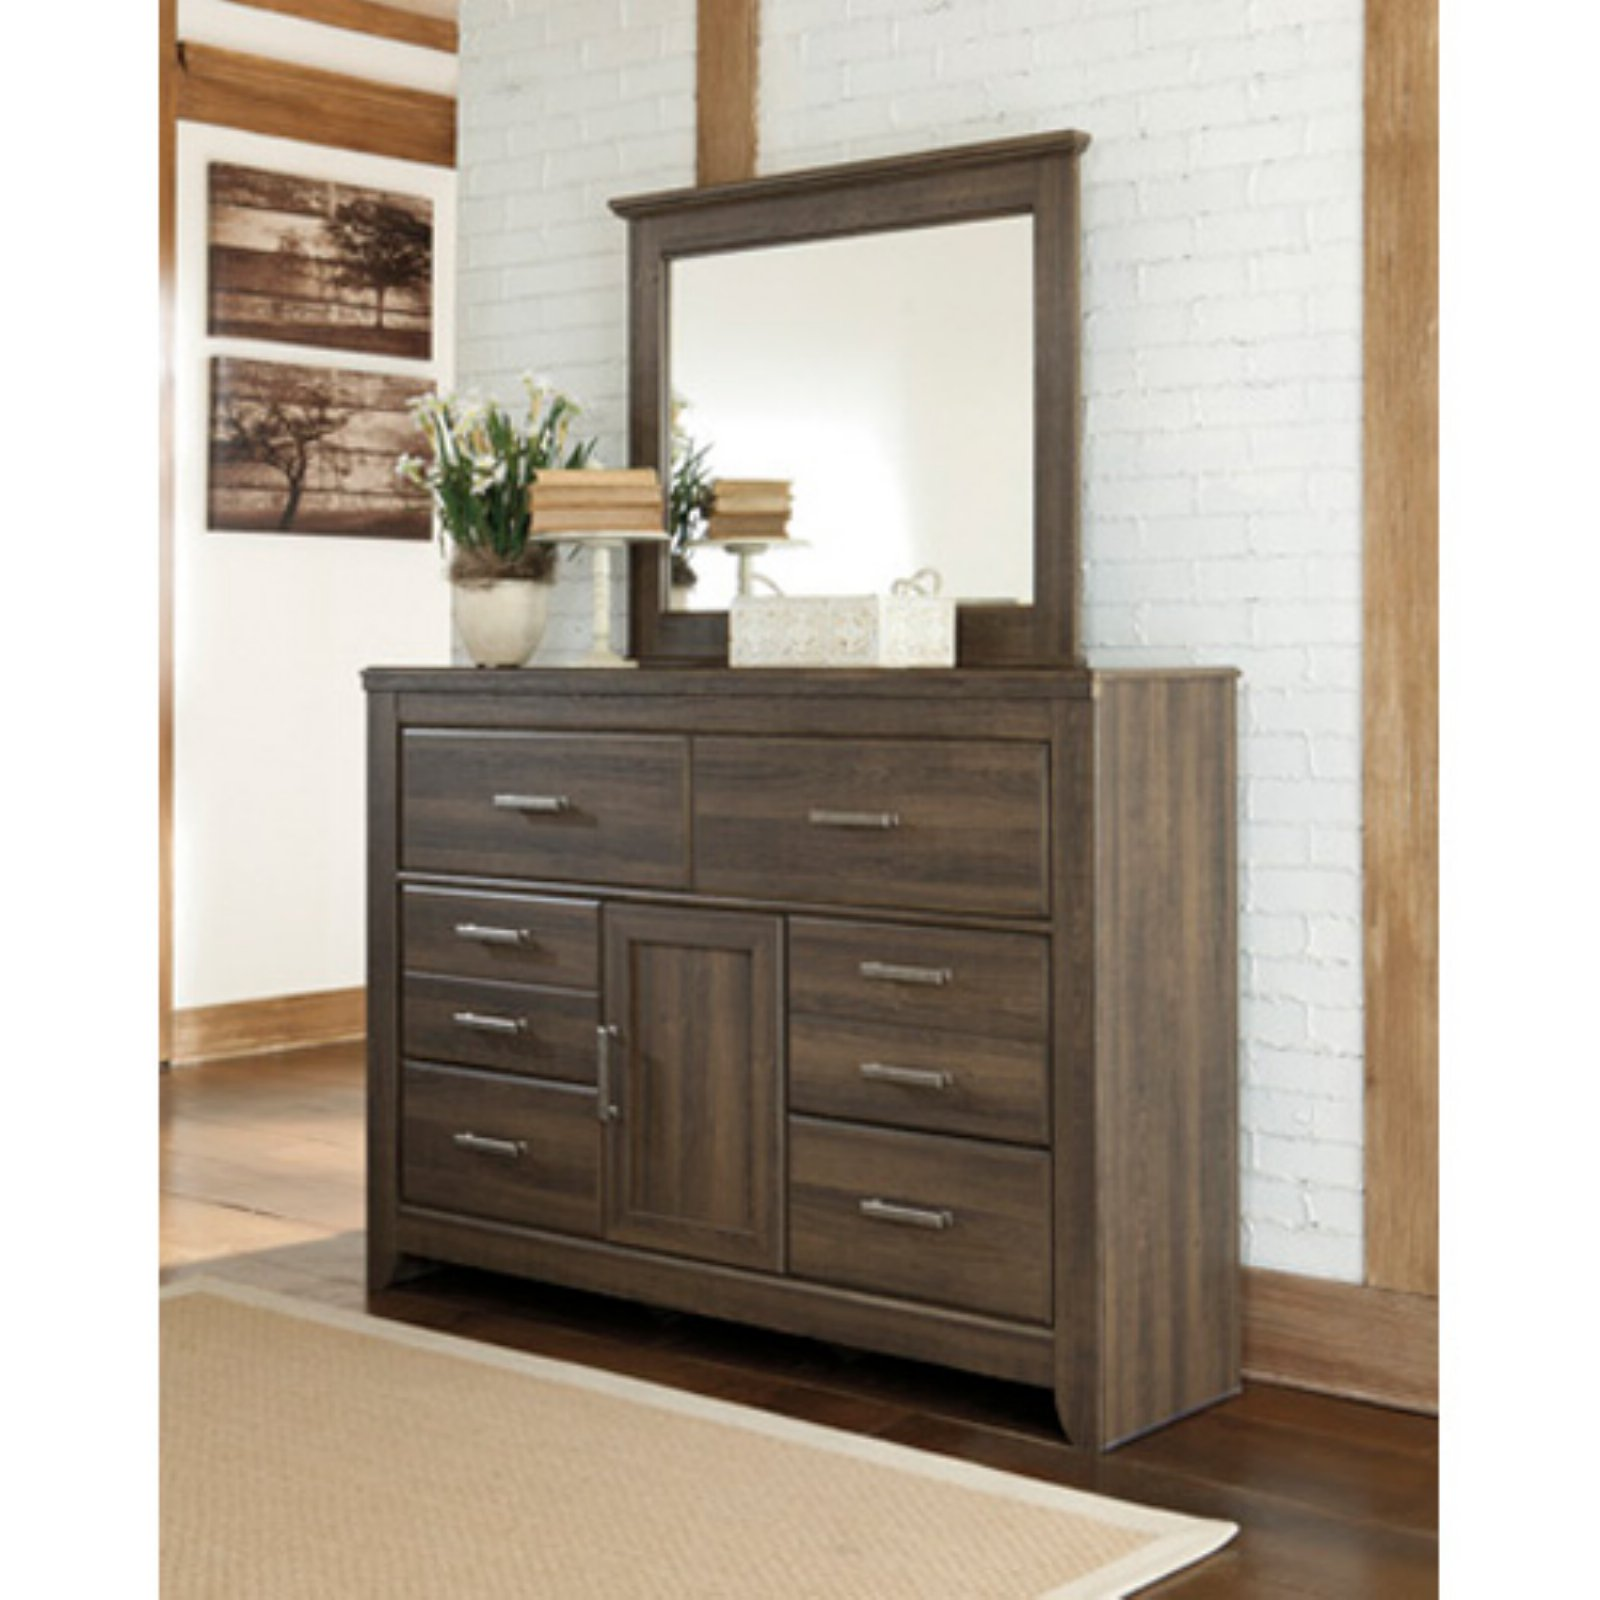 Signature Design by Ashley Juararo 6 Drawer Dresser with Optional Mirror